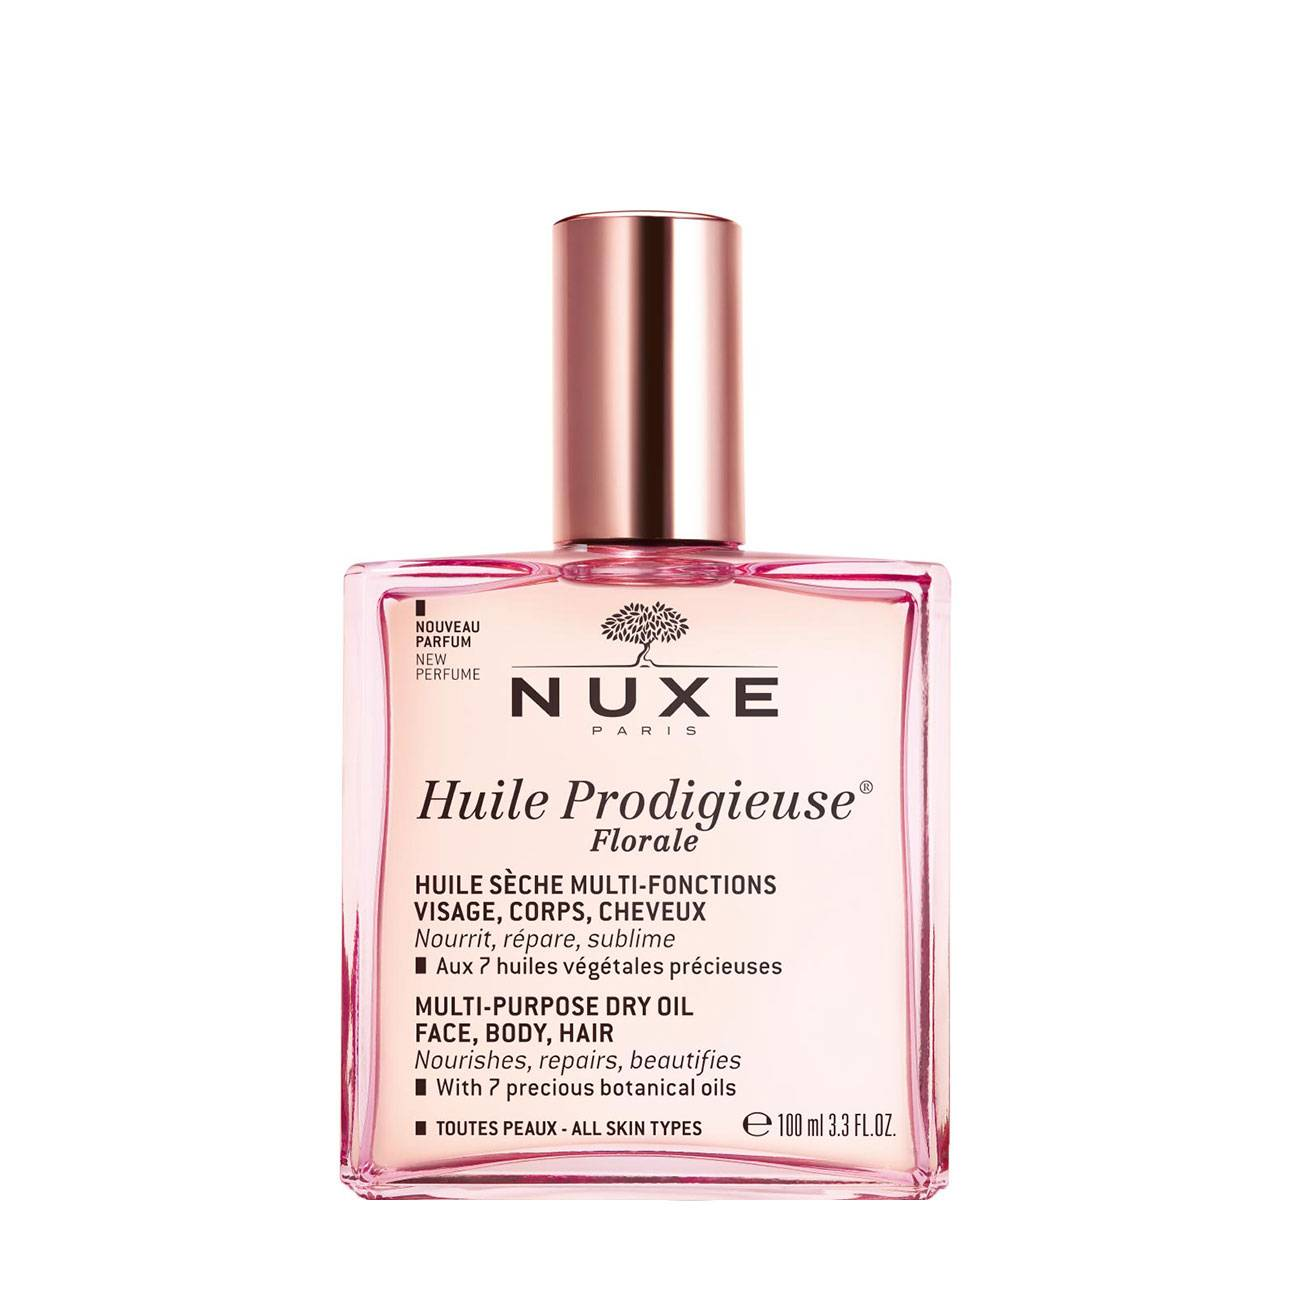 Nuxe Huile Prodigeuse Florale